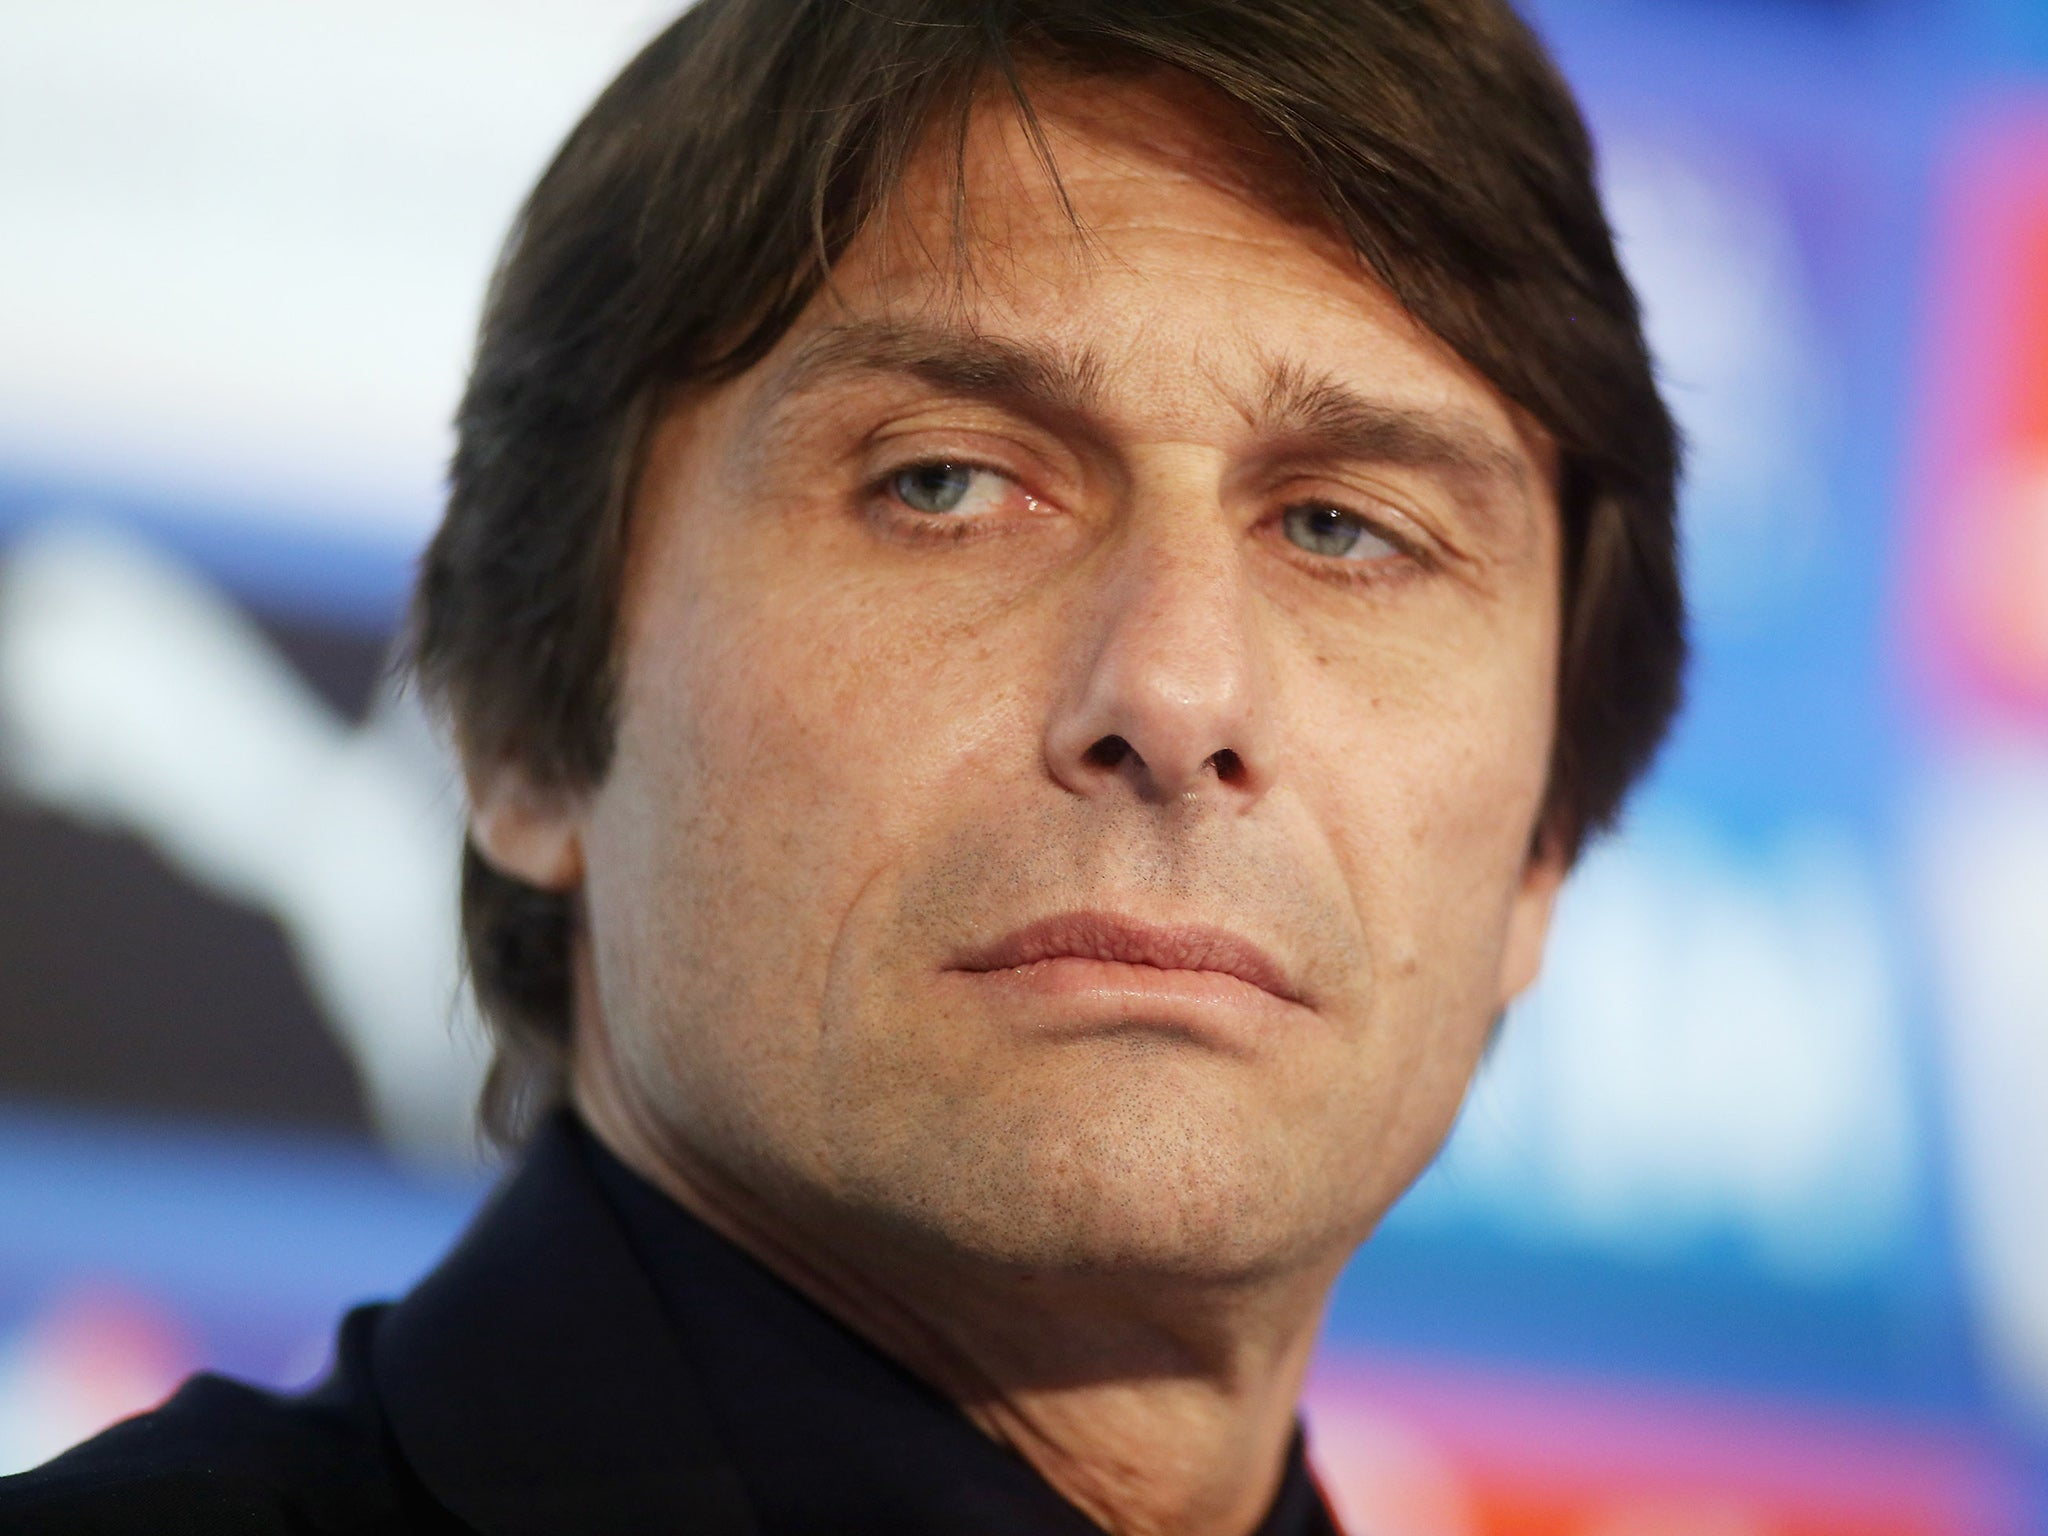 The 48-year old son of father (?) and mother(?), 178 cm tall Antonio Conte in 2018 photo